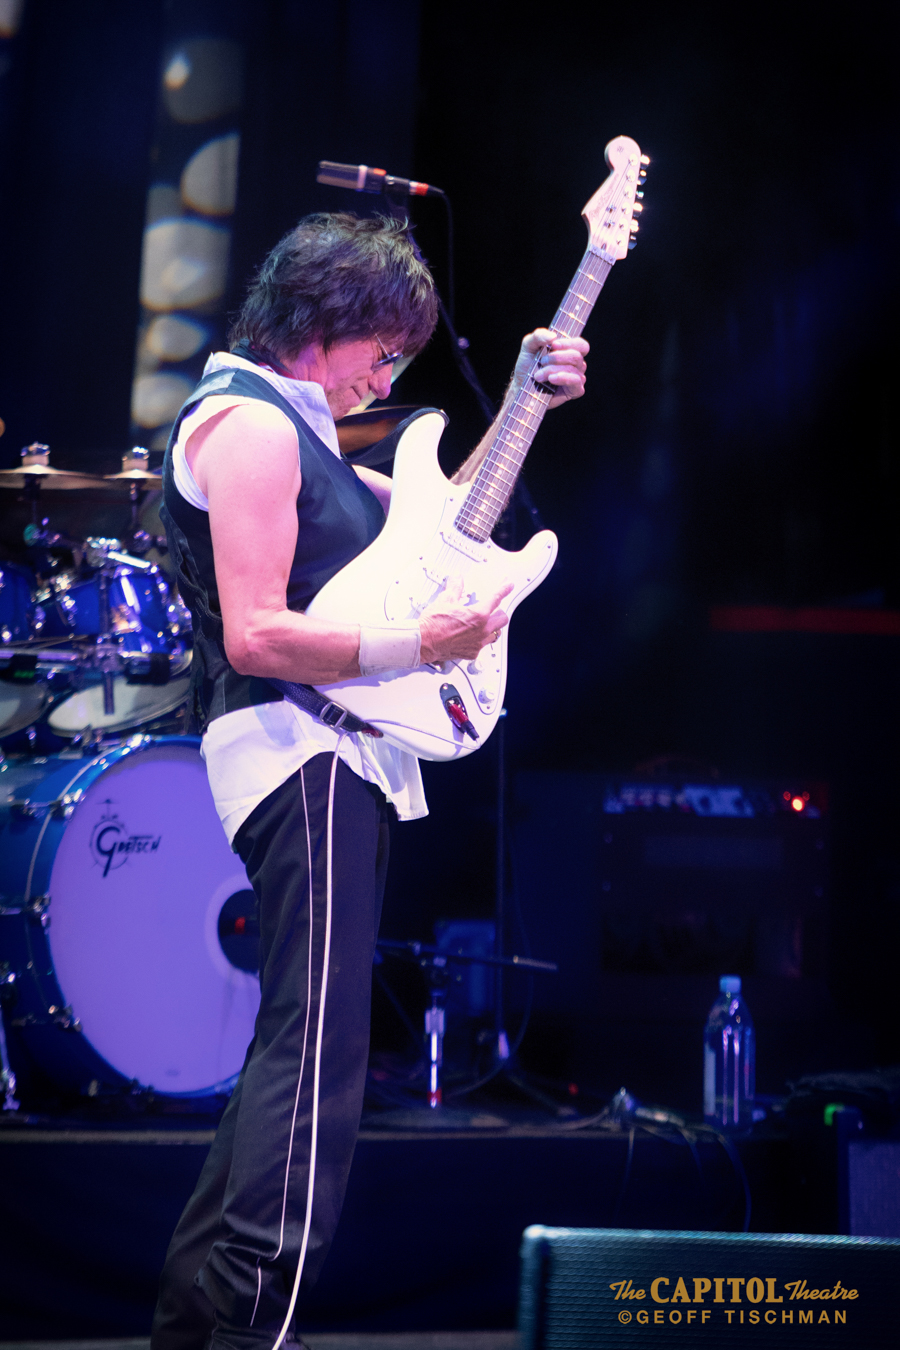 Jeff Beck Lights Up The Capitol Theatre